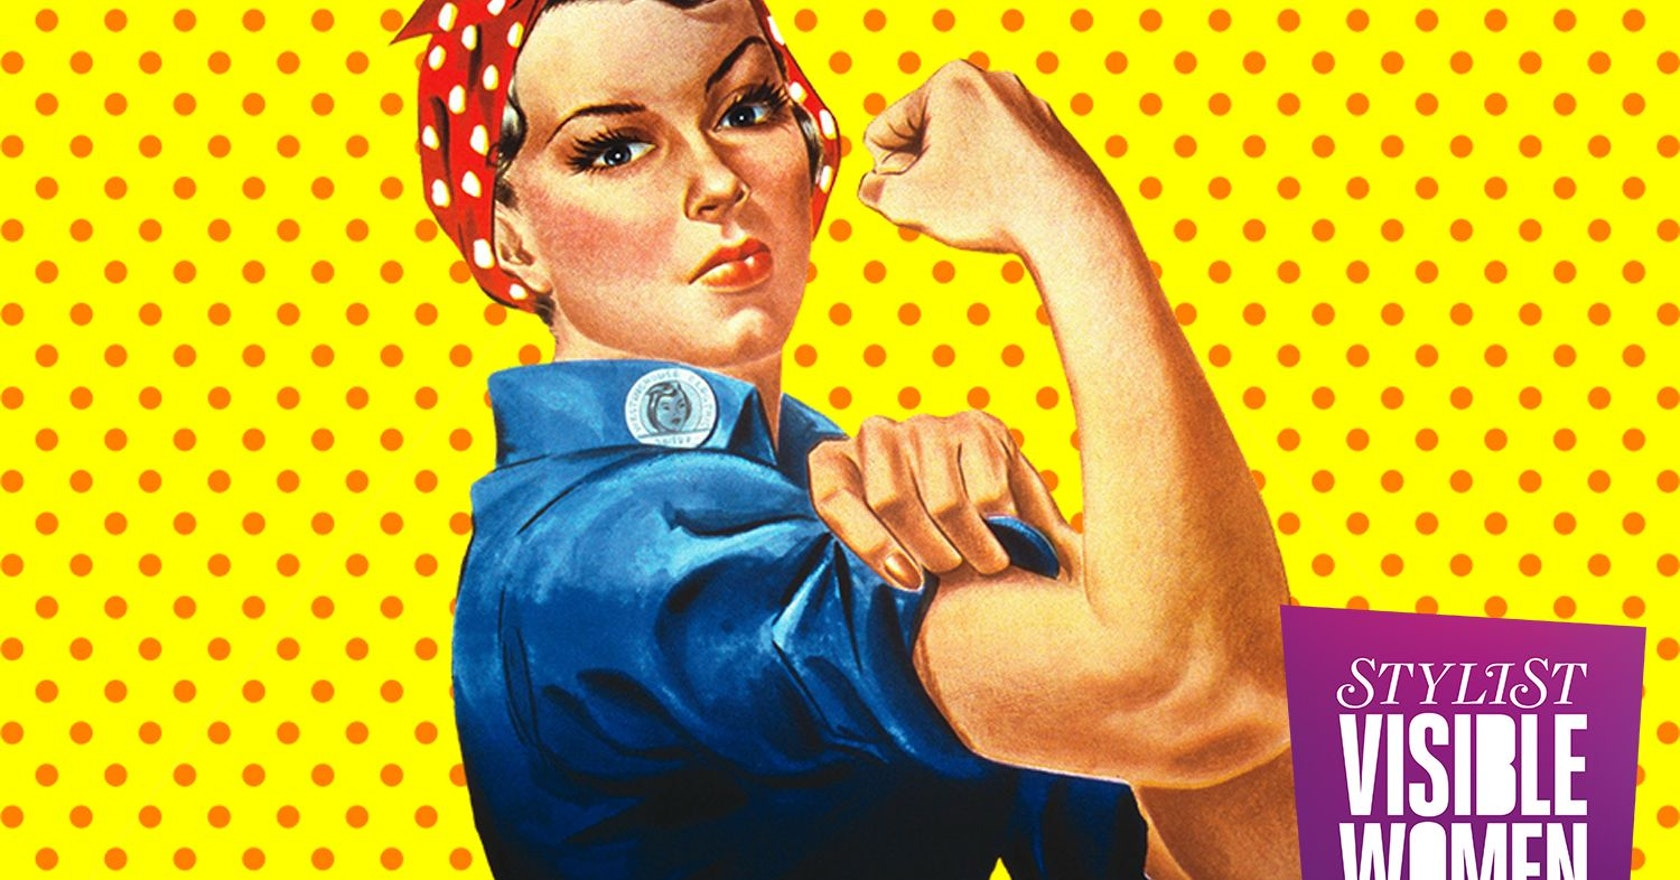 Woman who inspired famous Rosie the Riveter poster dies aged 96